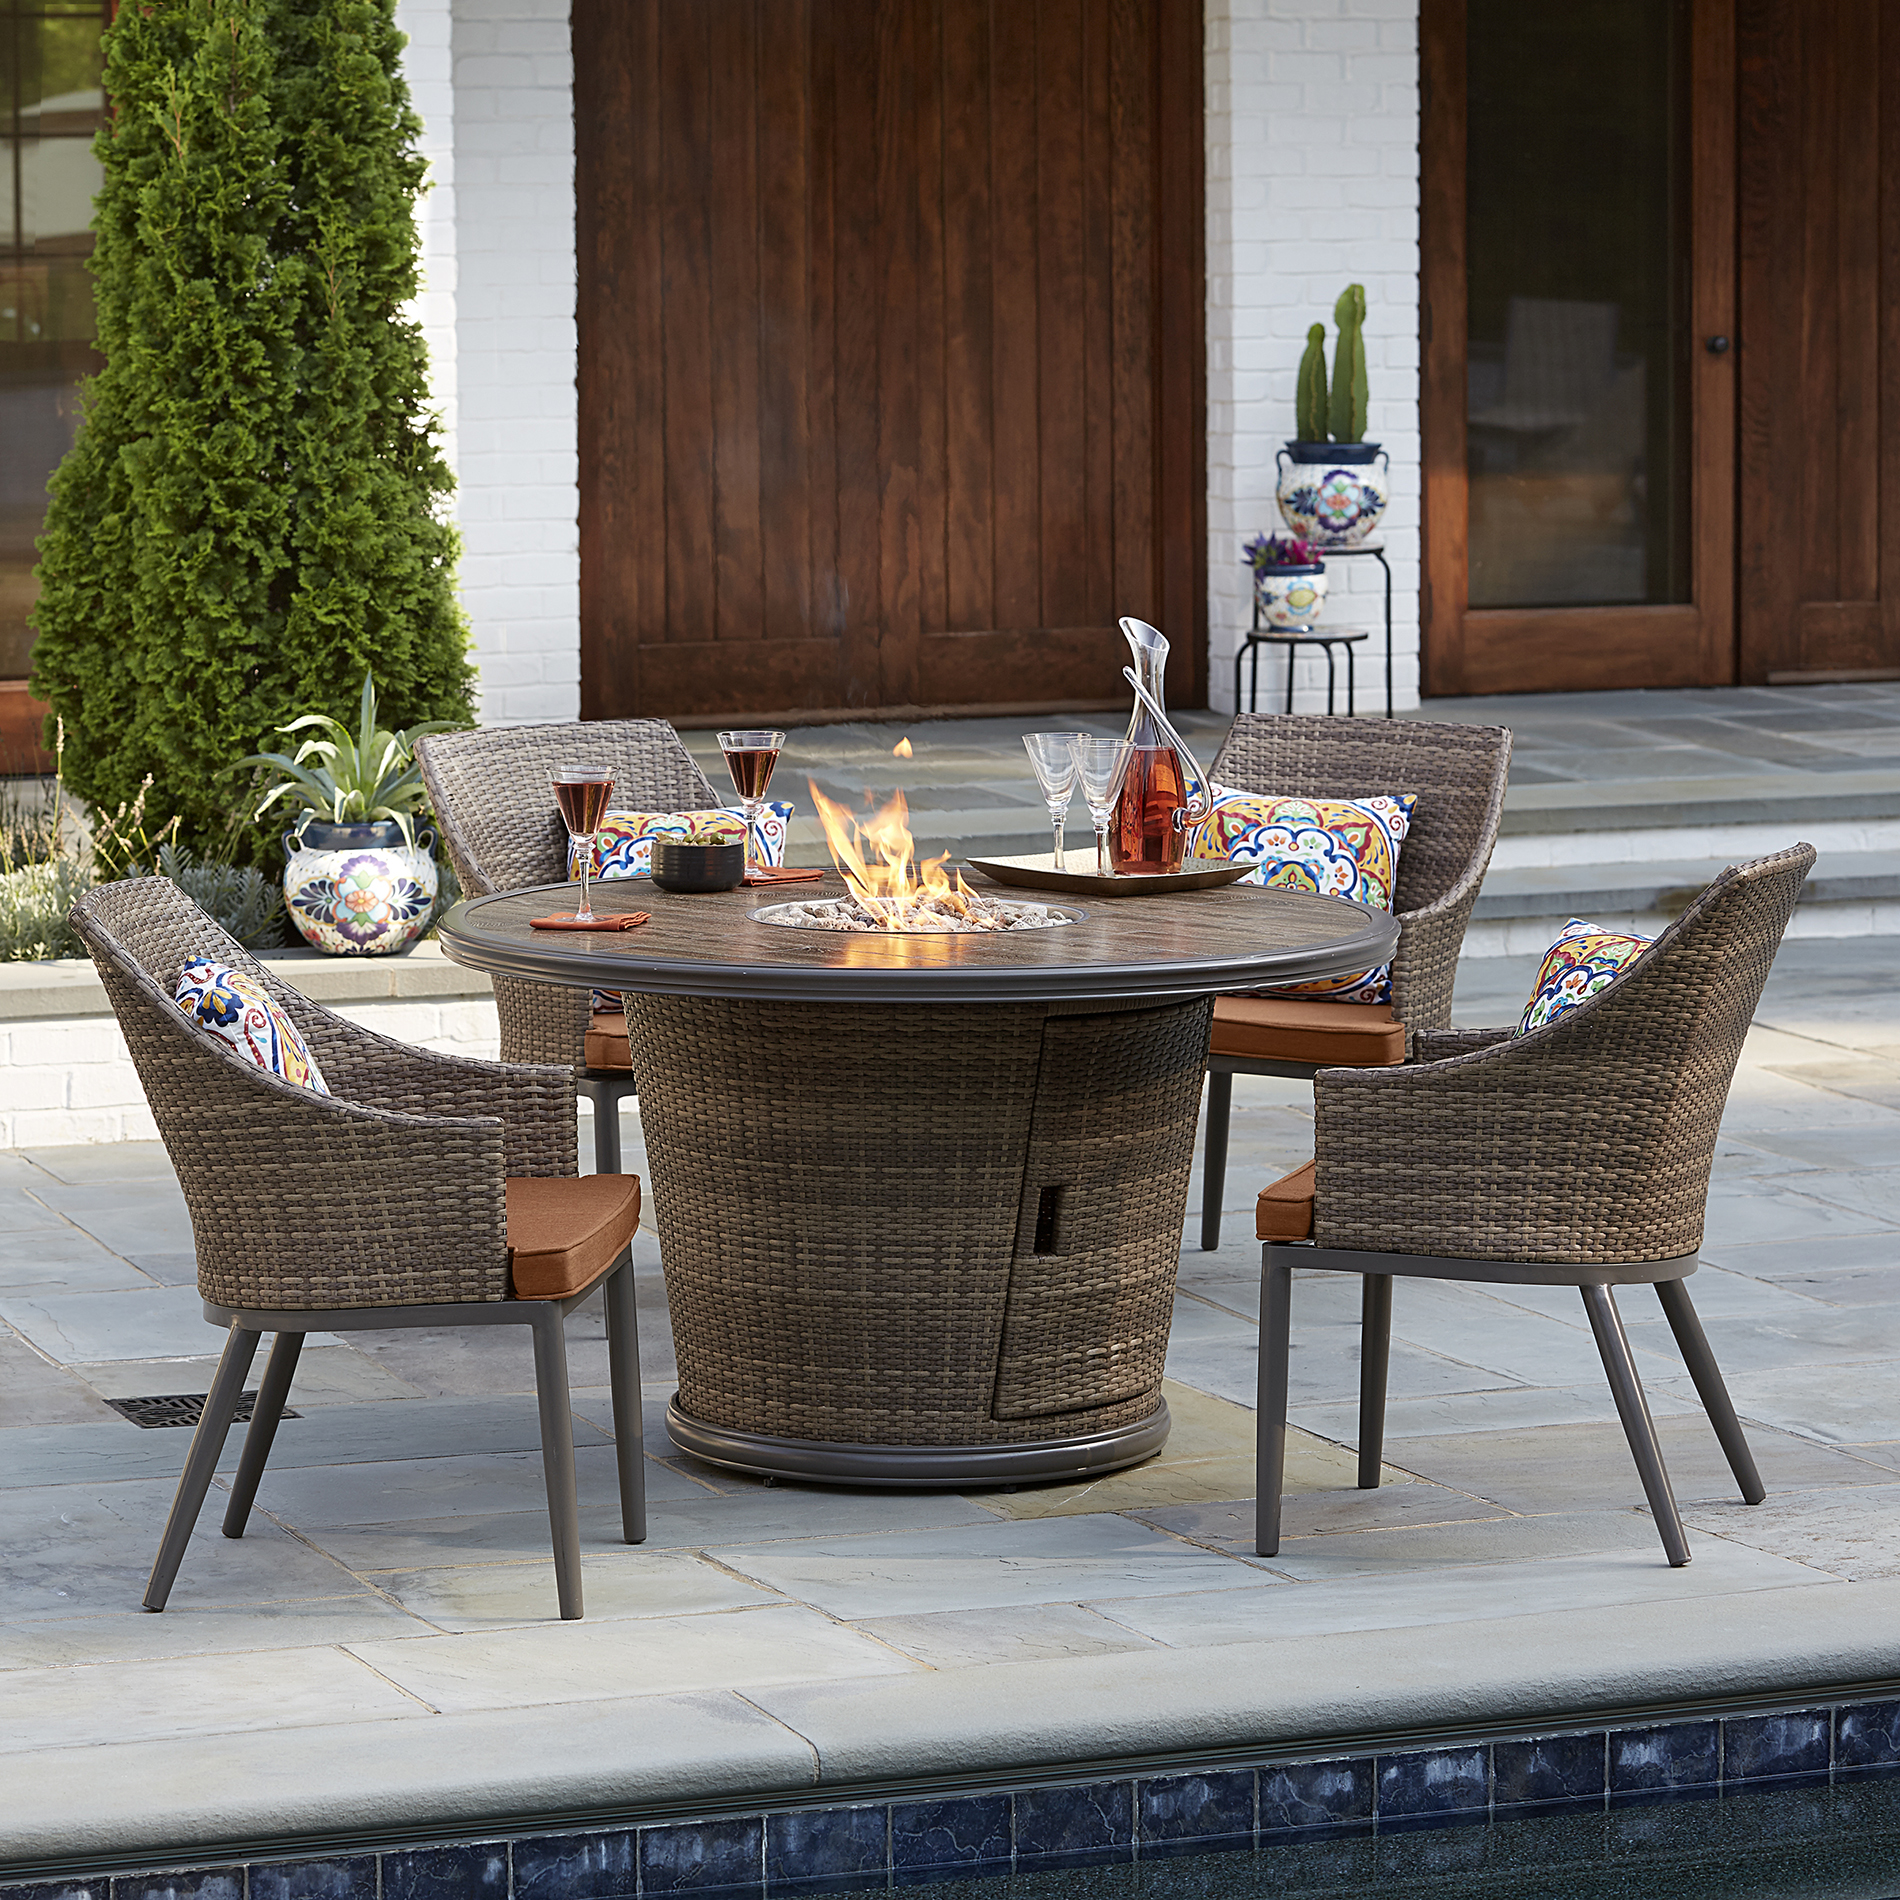 Grand Resort Santa Rosa 5 Pc. Wicker Fire Dining Set